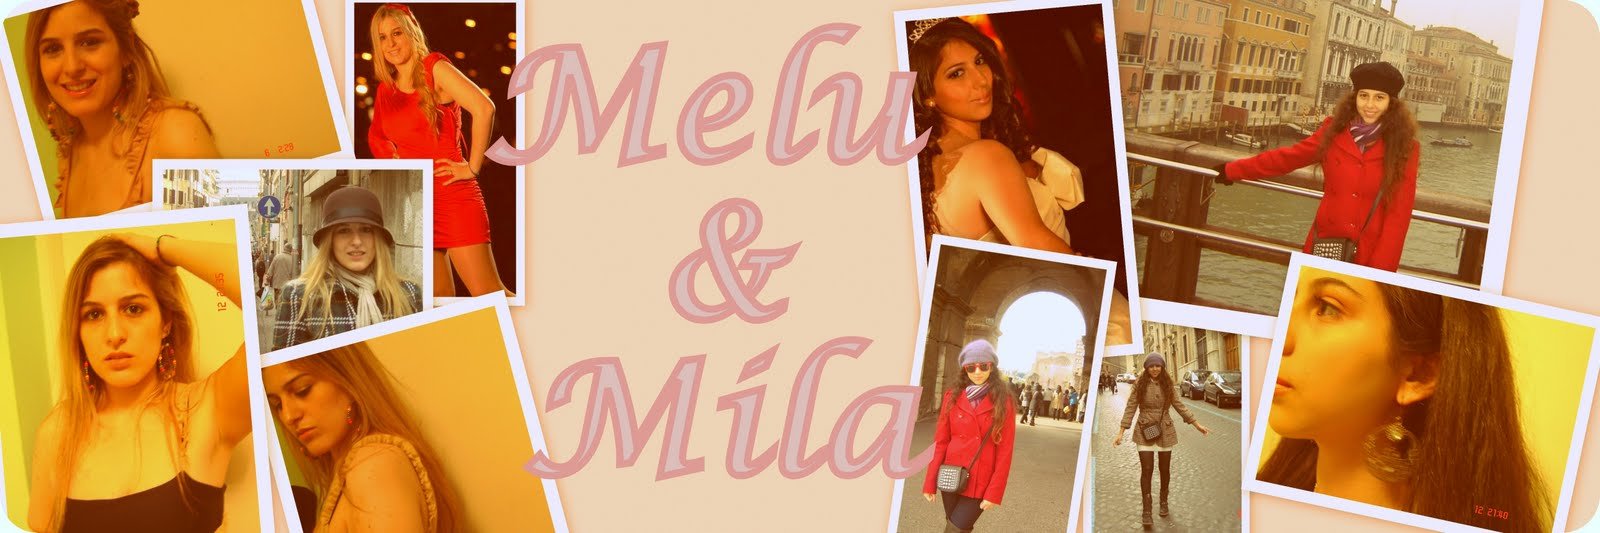 Melu and Mila